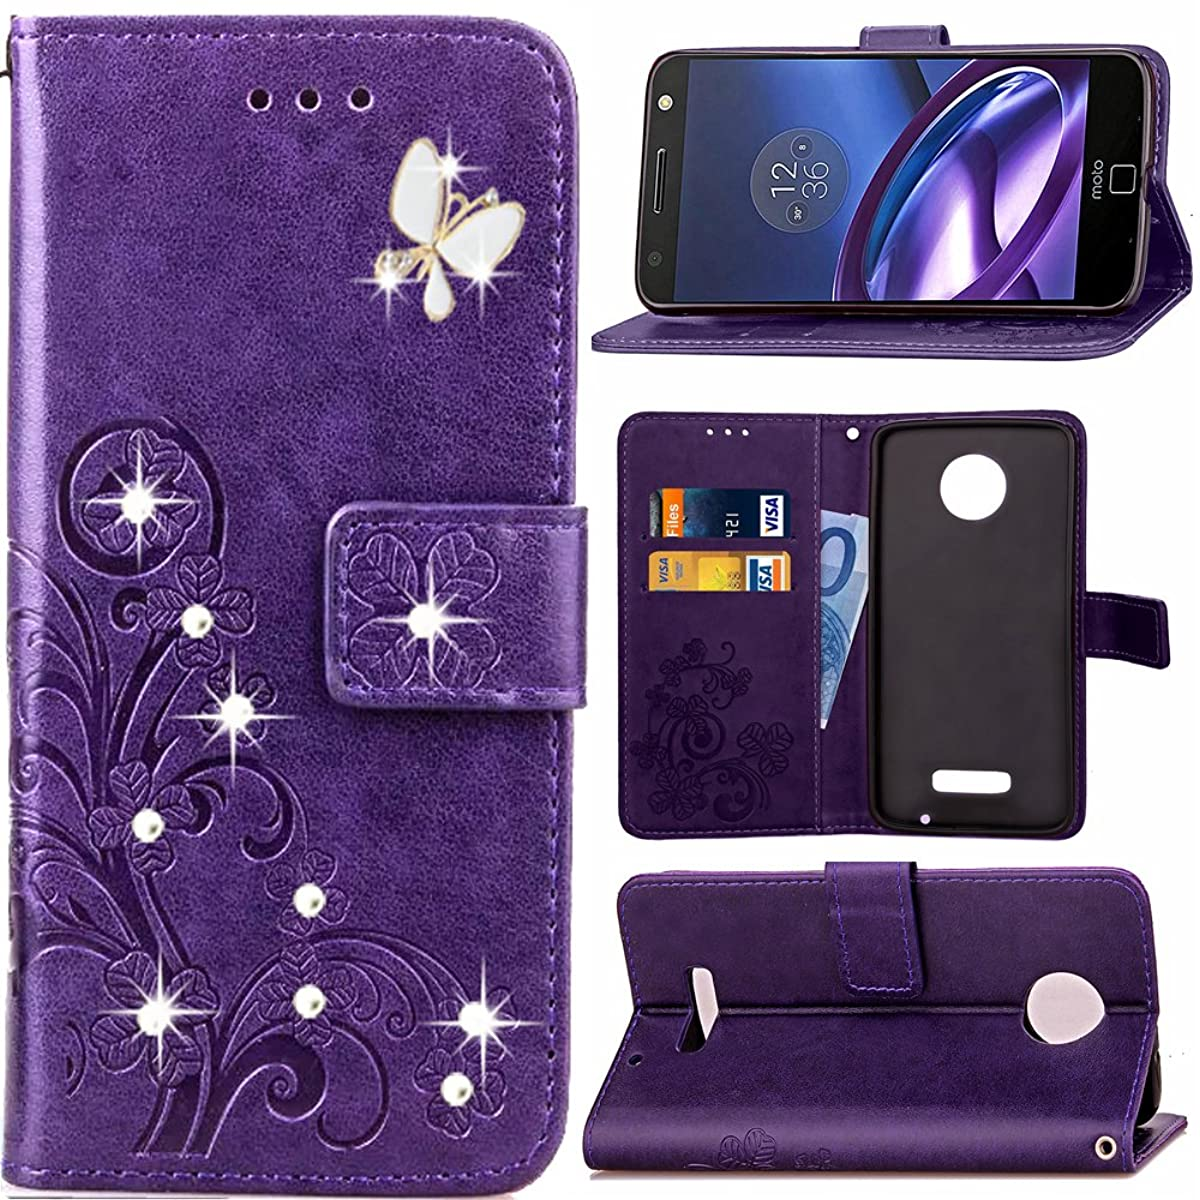 HAOTP Beauty 3D Fashion Handmade Bling Crystal Rhinestone Butterfly Floral Lucky Flowers PU Flip Stand Credit Card ID Holders Wallet Leather Case Cover for Motorola Moto Z Play Droid (Bling/Purple)